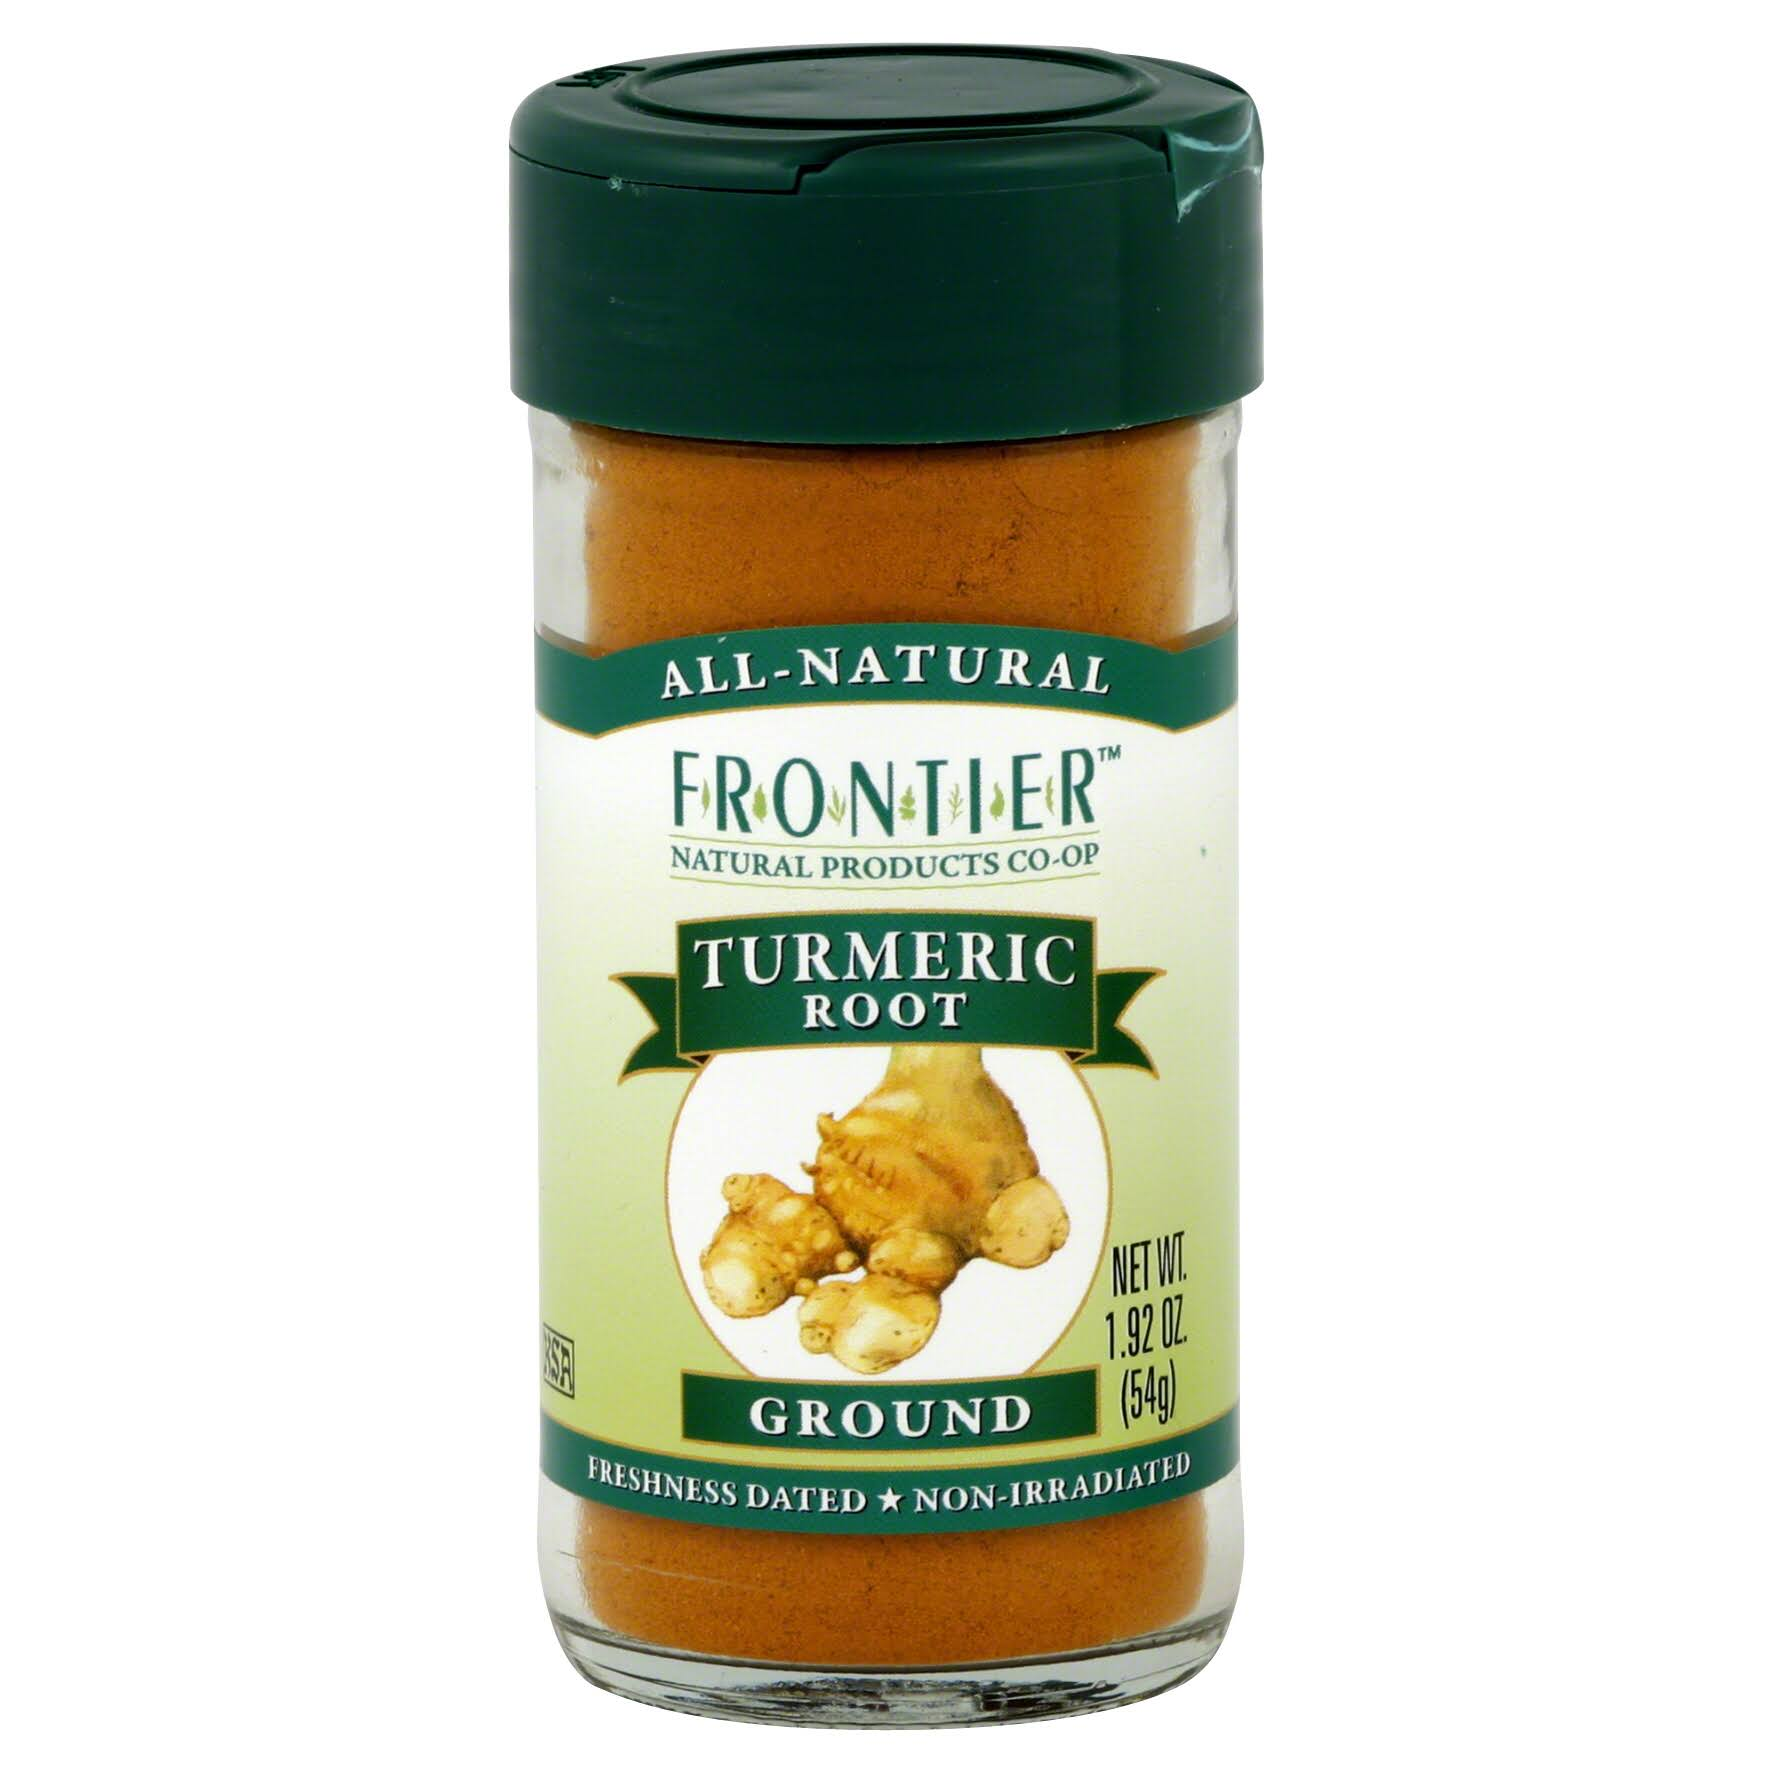 Frontier Turmeric Root Ground - 1.92oz